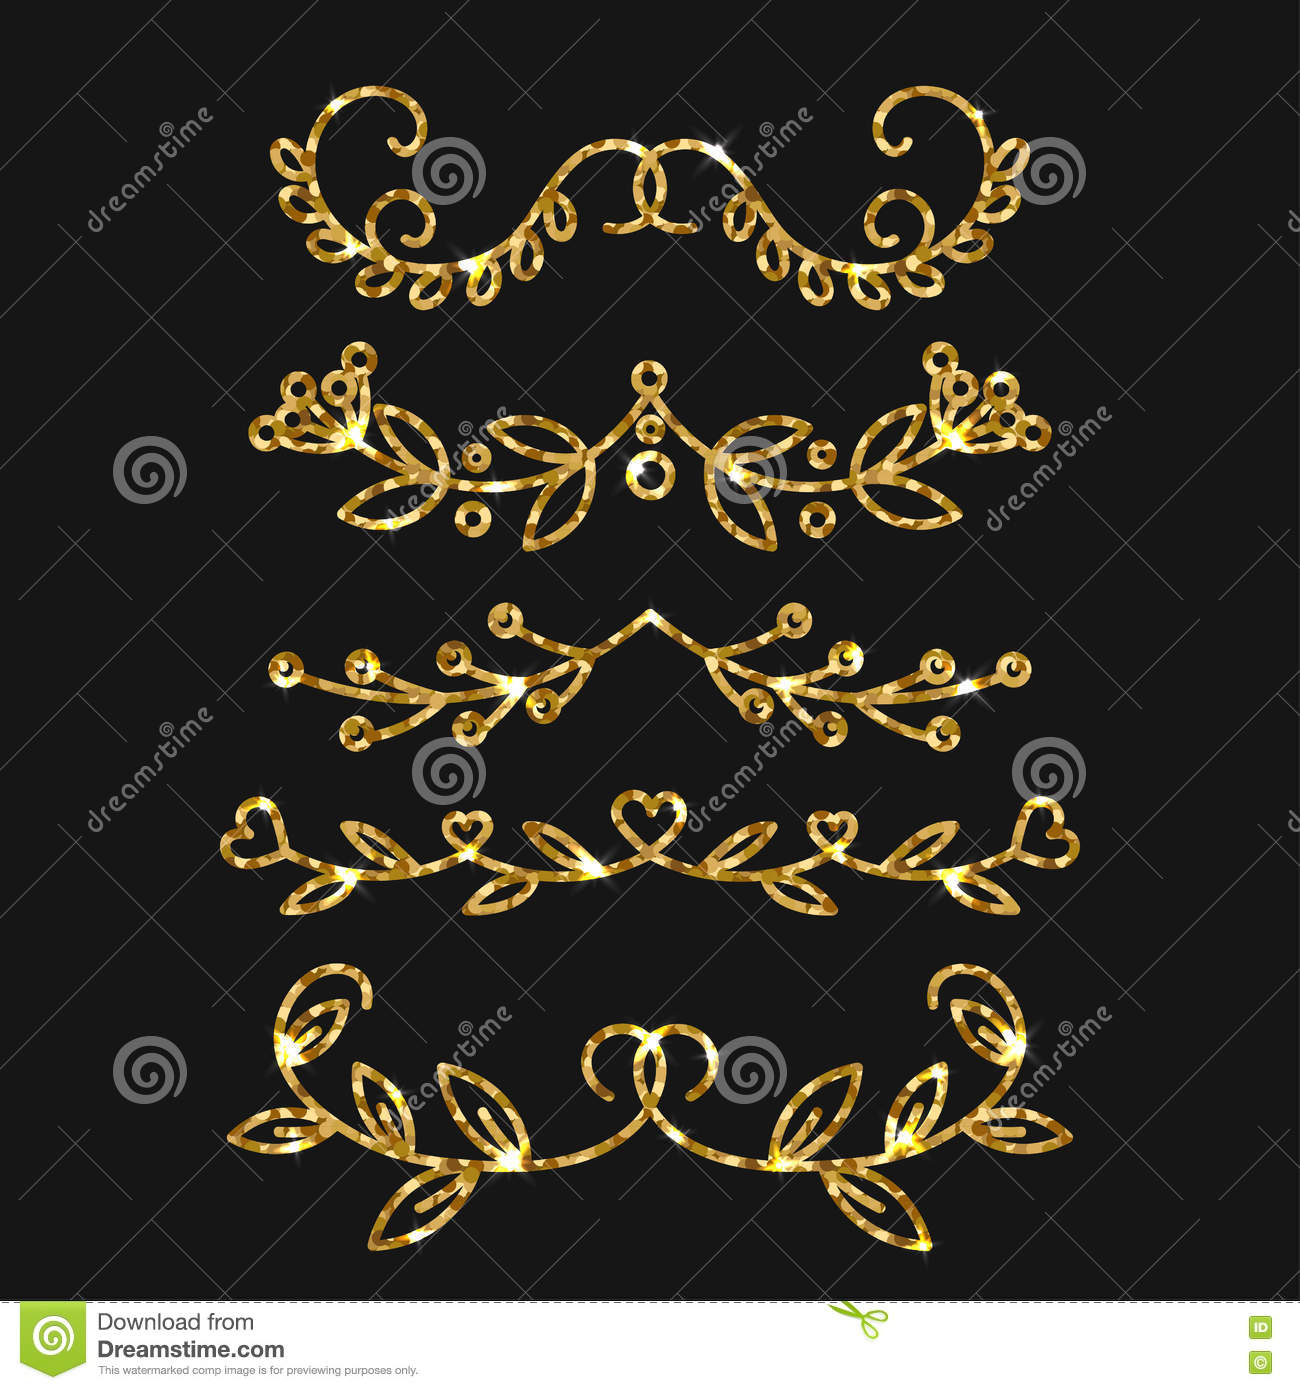 36a775529615 Dividers Set. Vector Gold Ornate Design. Golden Flourishes. Stock ...